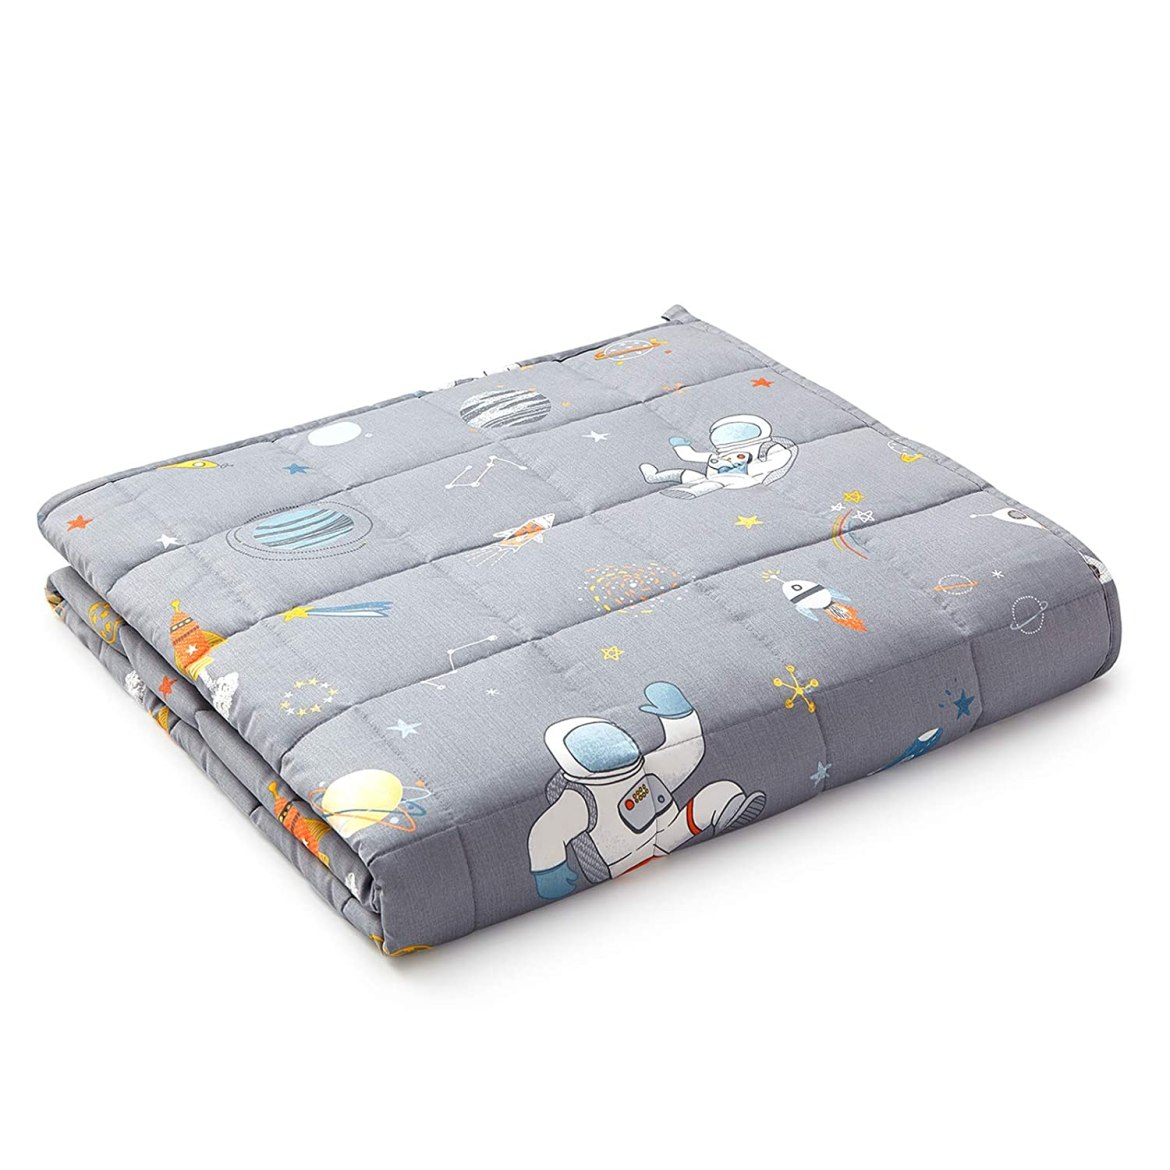 YnM Kids Weighted Blanket — Organic Long Stapled Cotton Material with Premium Glass Beads (Astronaut , 41''x60'' 10lbs), Suit for One Person(~90lb) Use on Twin Bed